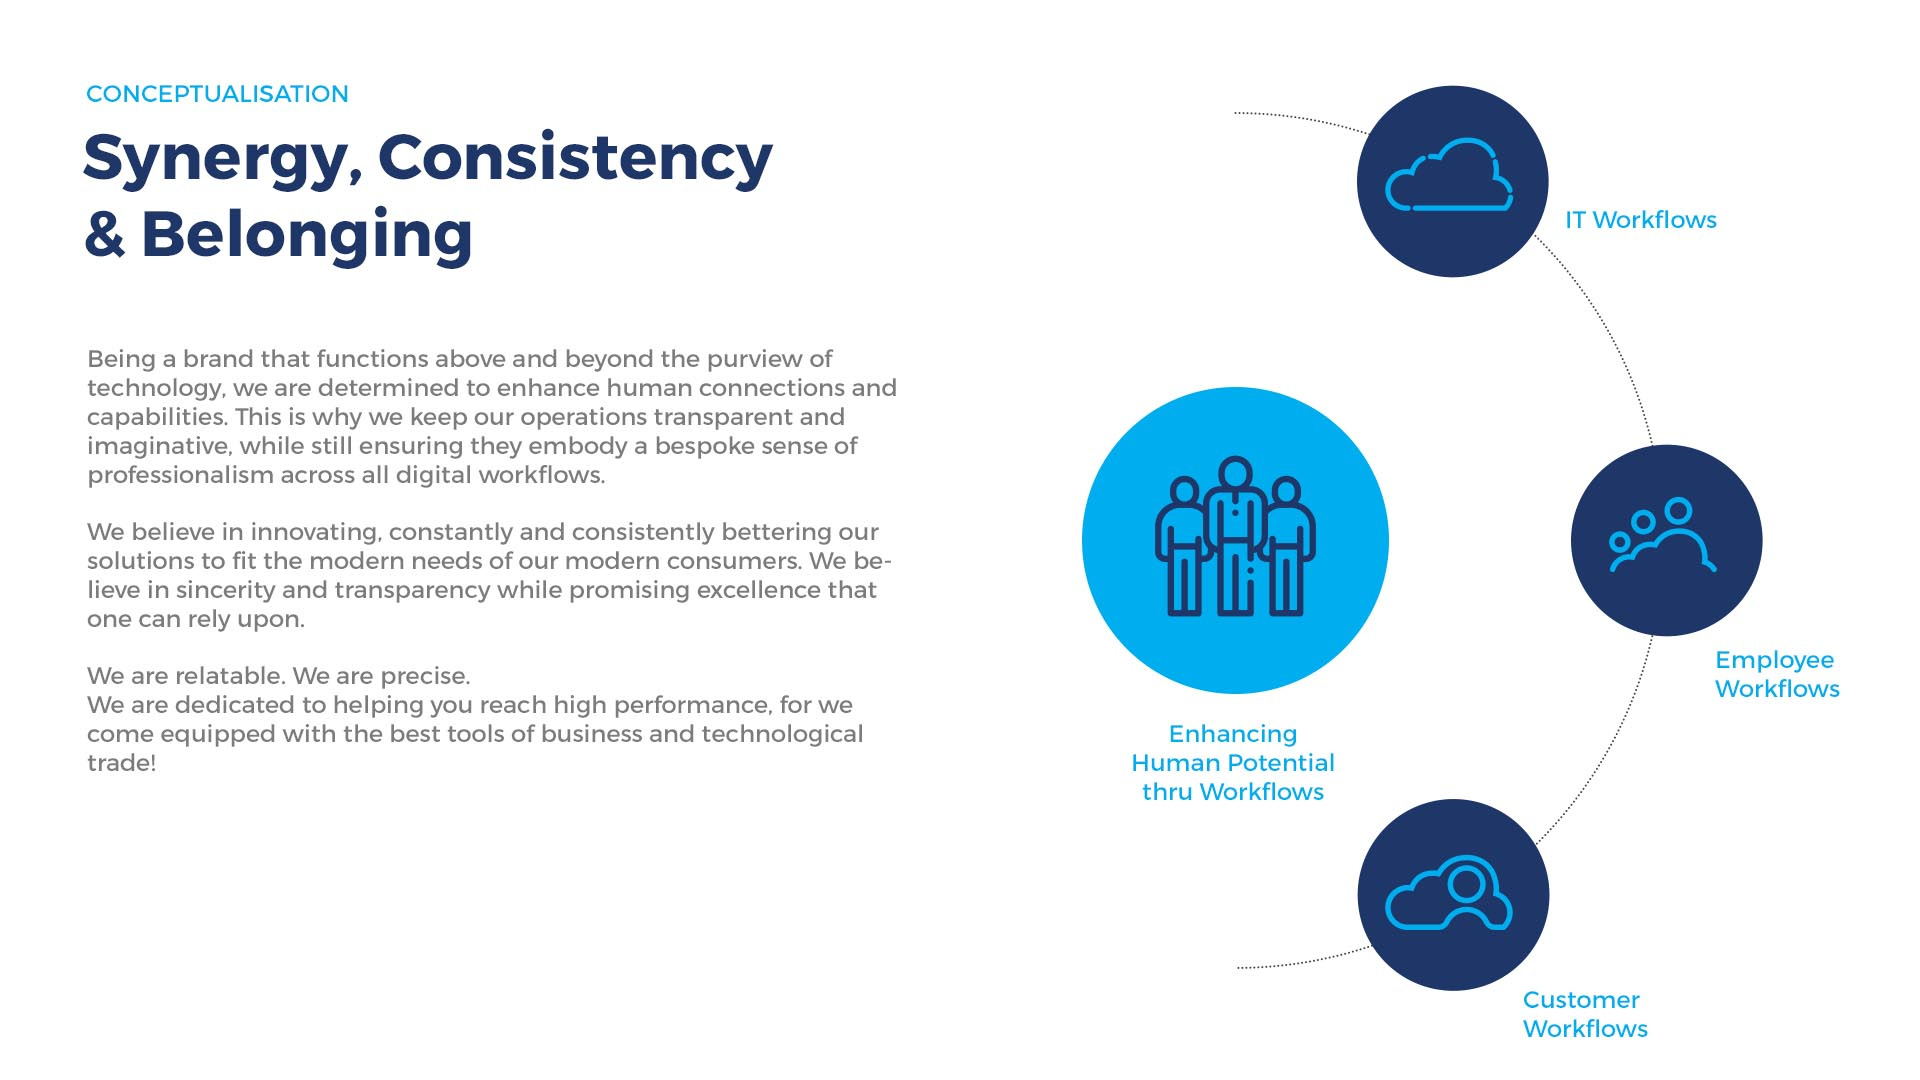 Cloud Go Brand Synergy Consistency Conceptualisation